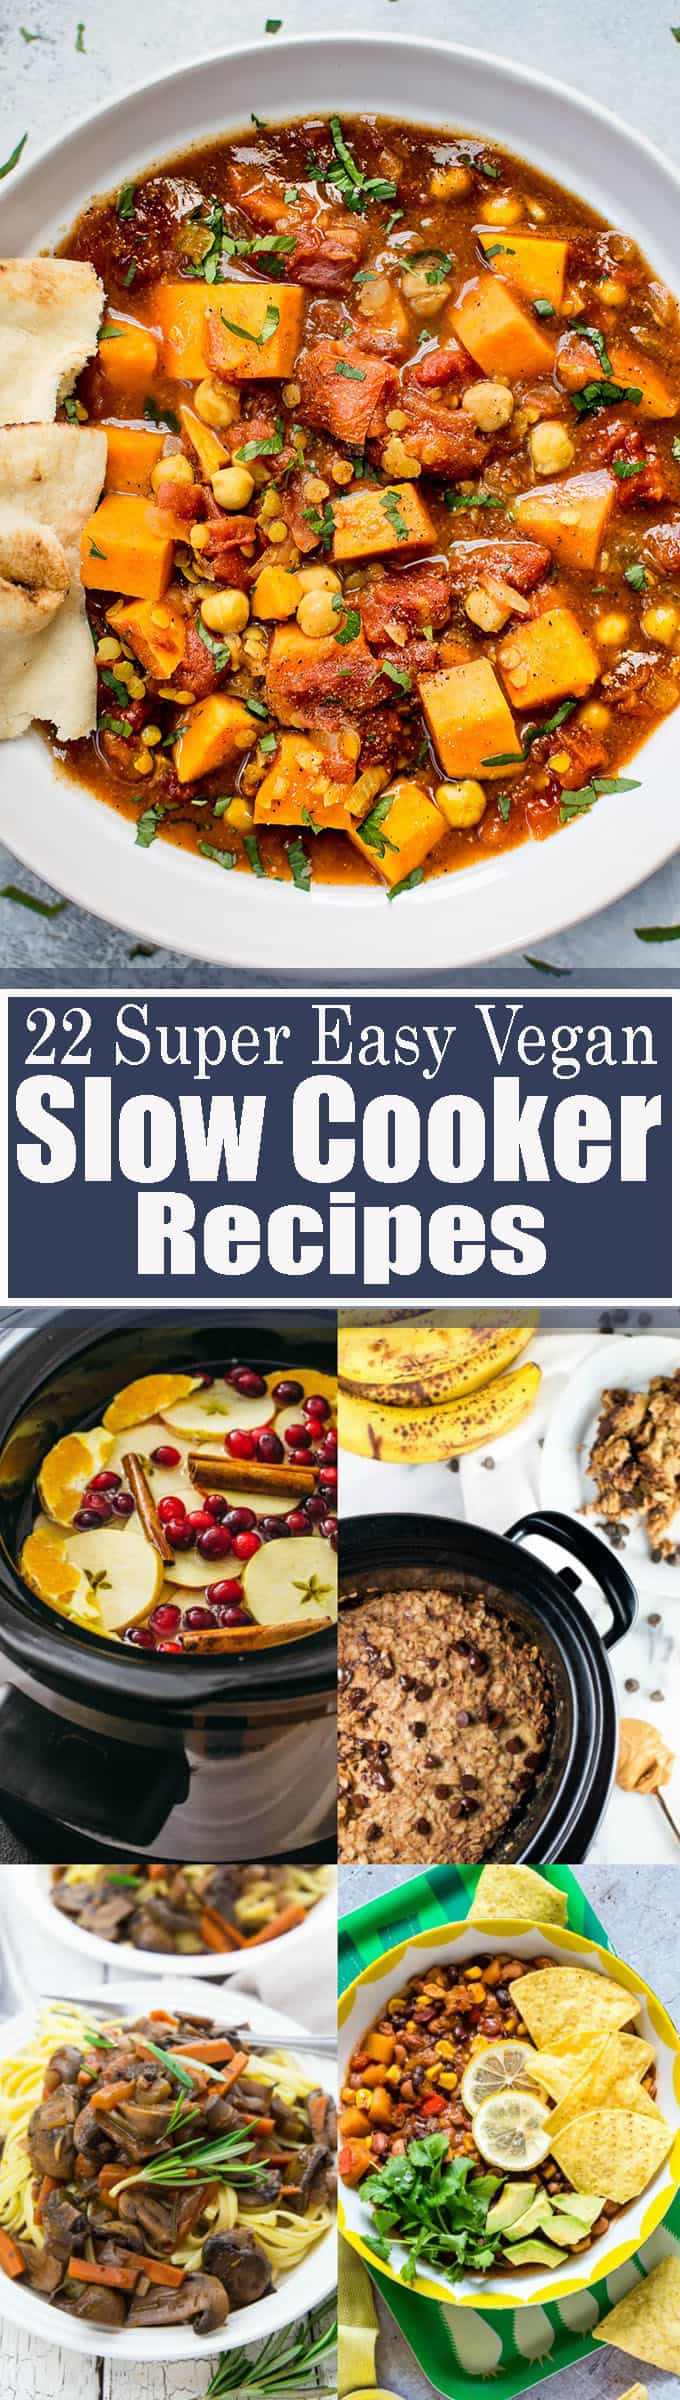 These 22 vegan slow cooker recipes are perfect when you're looking for easy and comforting vegetarian recipes! This roundup includes vegan dinner recipes, vegan breakfast recipes, and even drinks! Vegan cooking made easy! <3